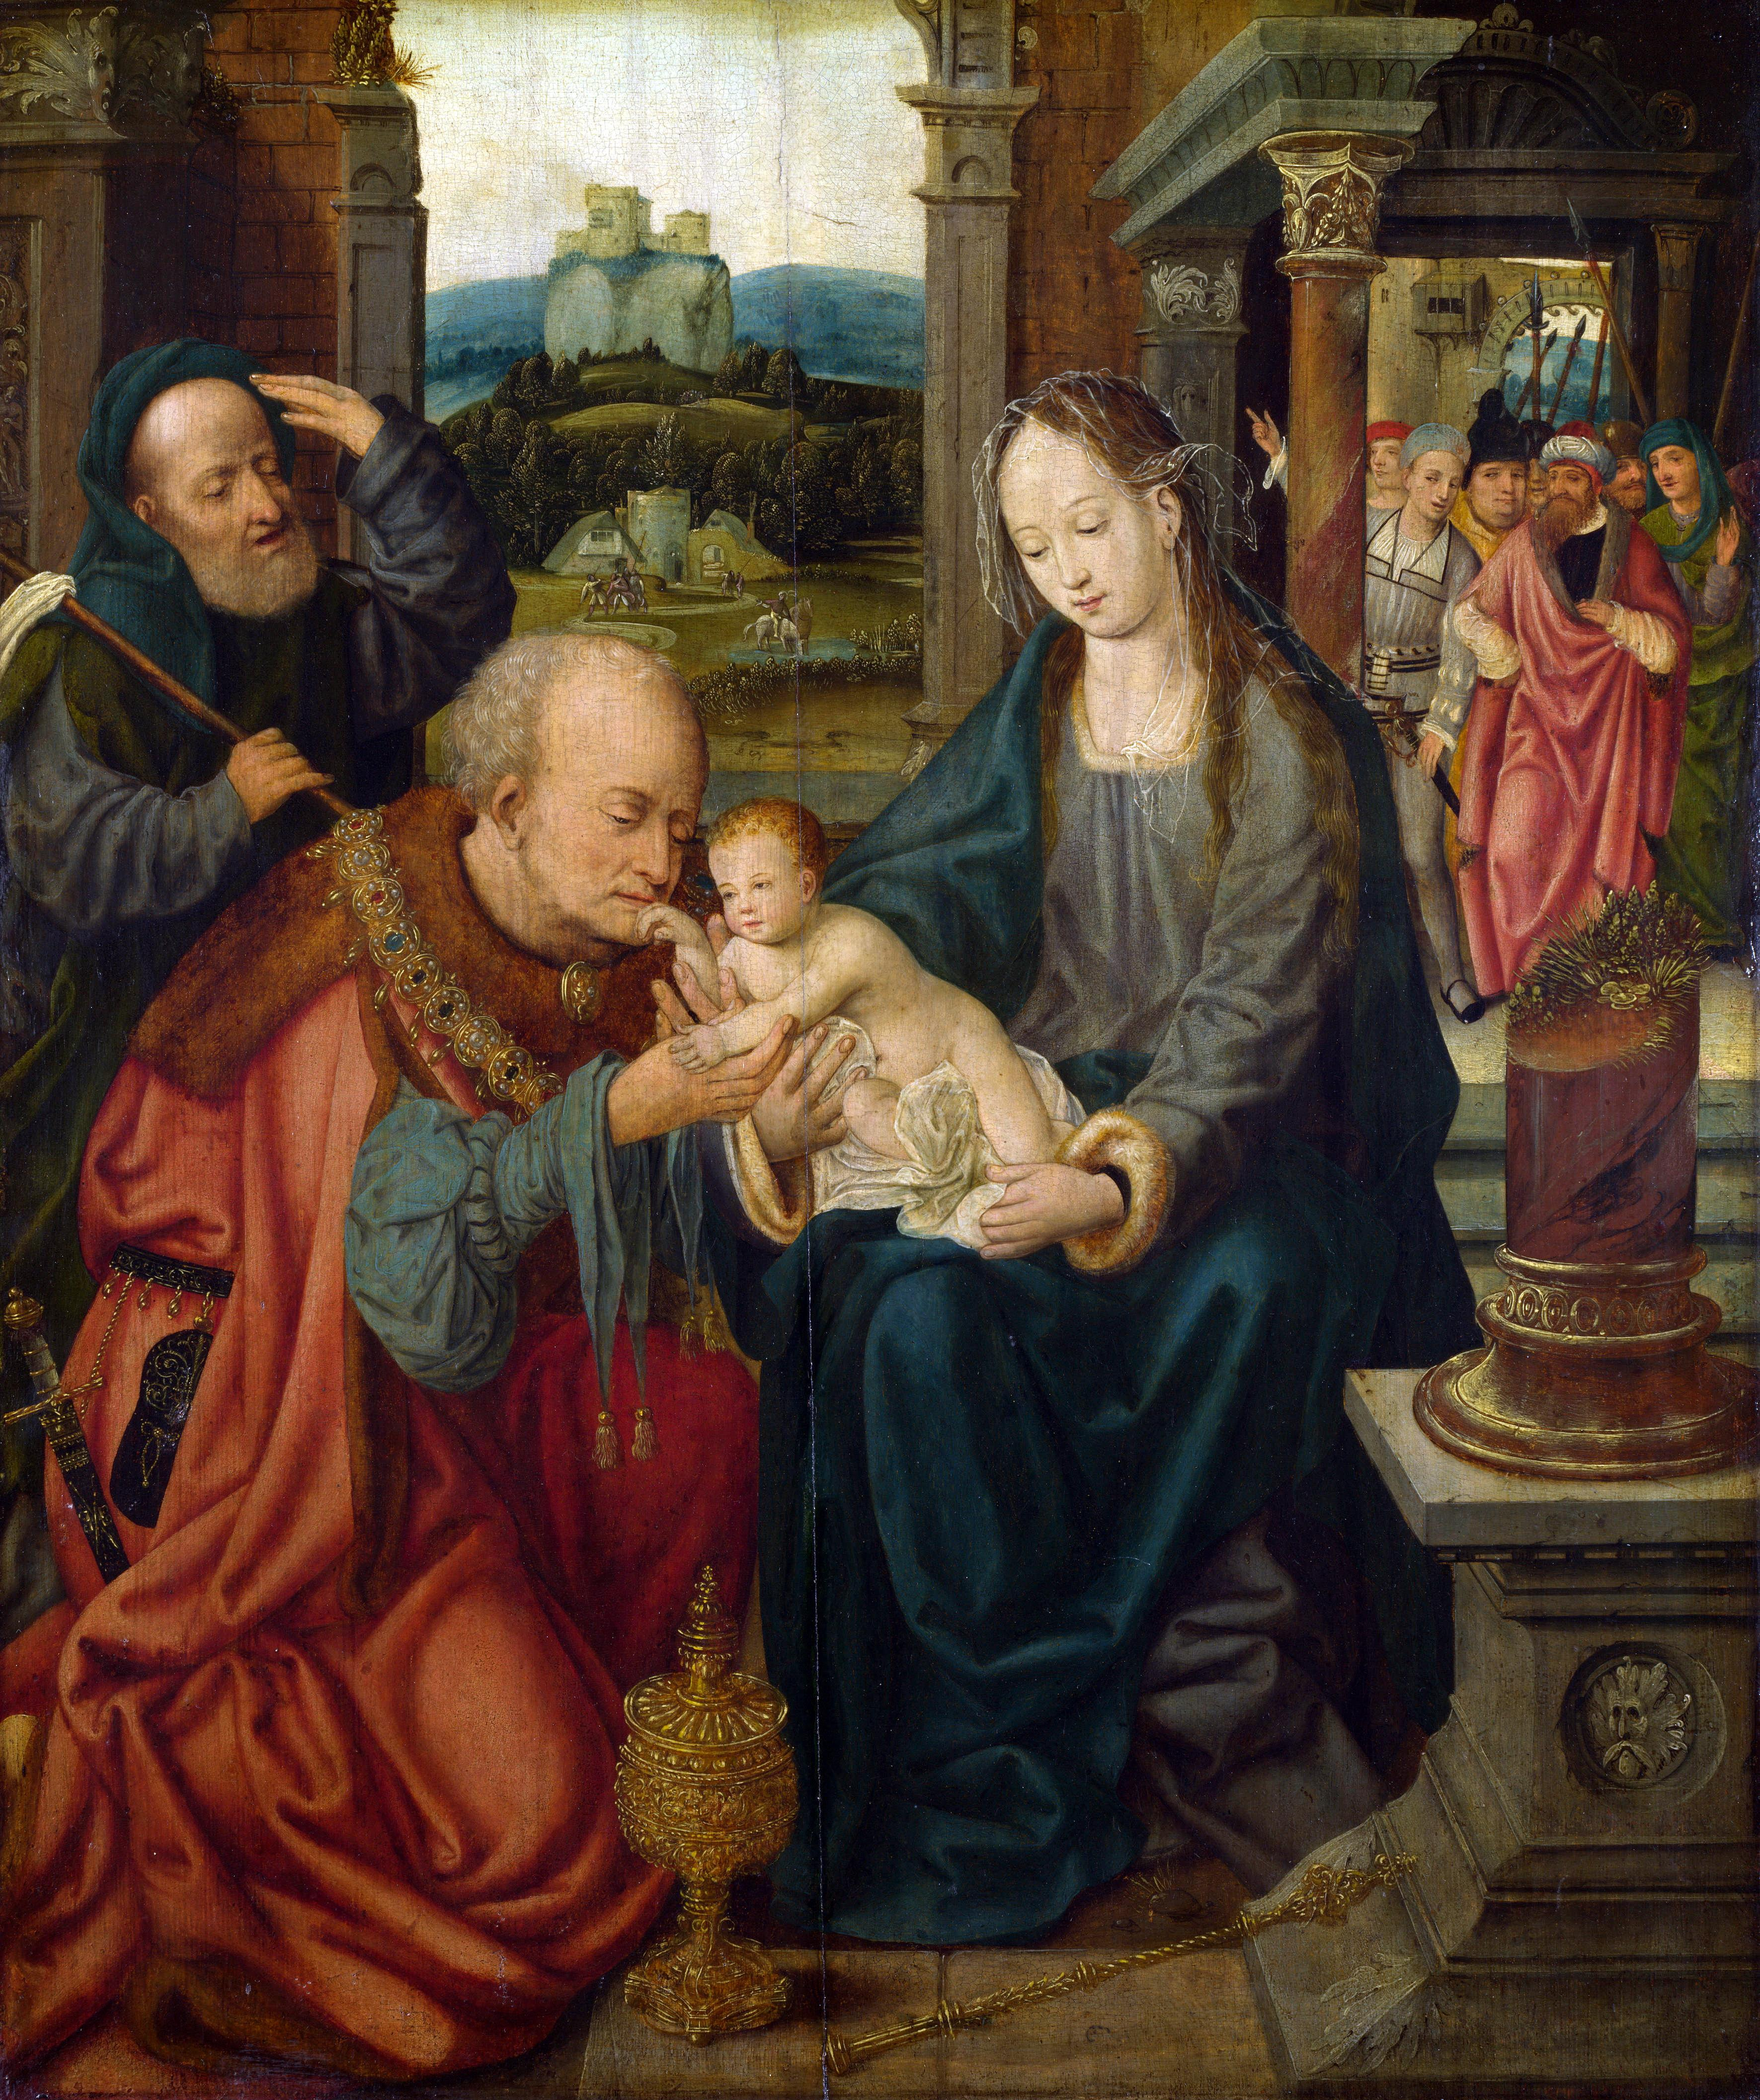 Follower Joos van Cleve. Adoration of the Kings (Capability, 1525-1550) (London, Nat. Gallery)